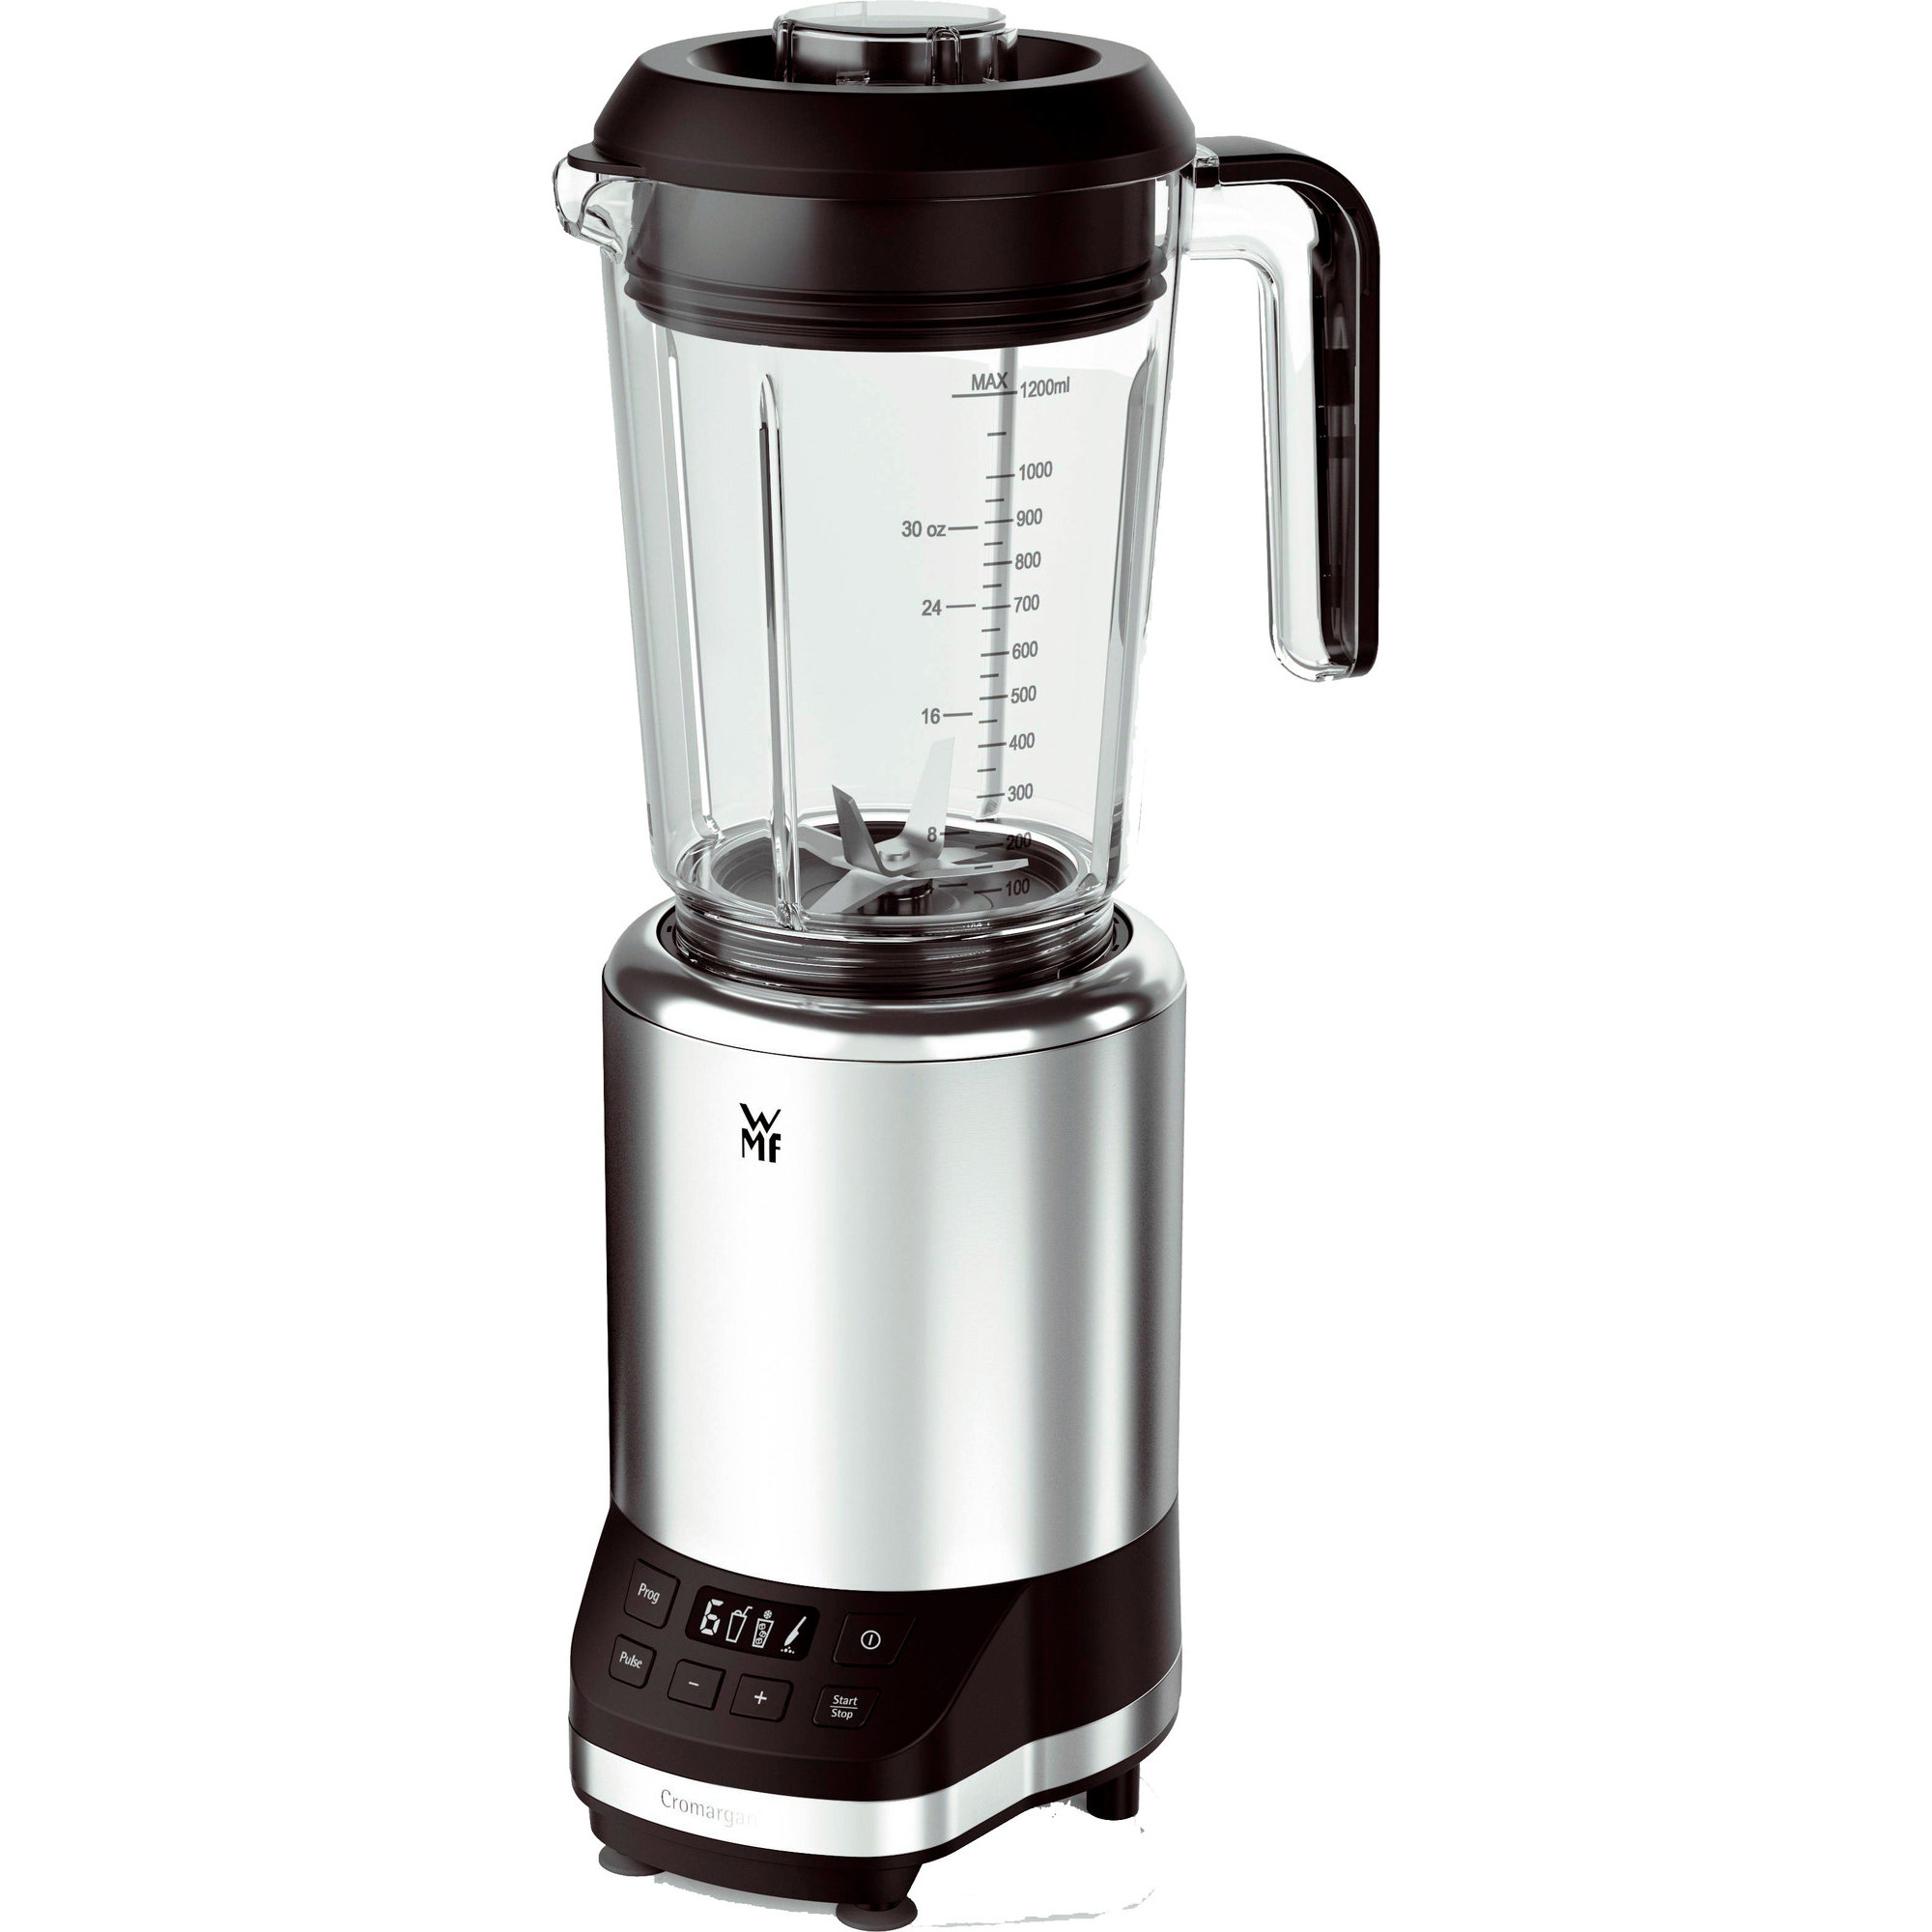 WMF Kult Pro Multifunktionell Blender